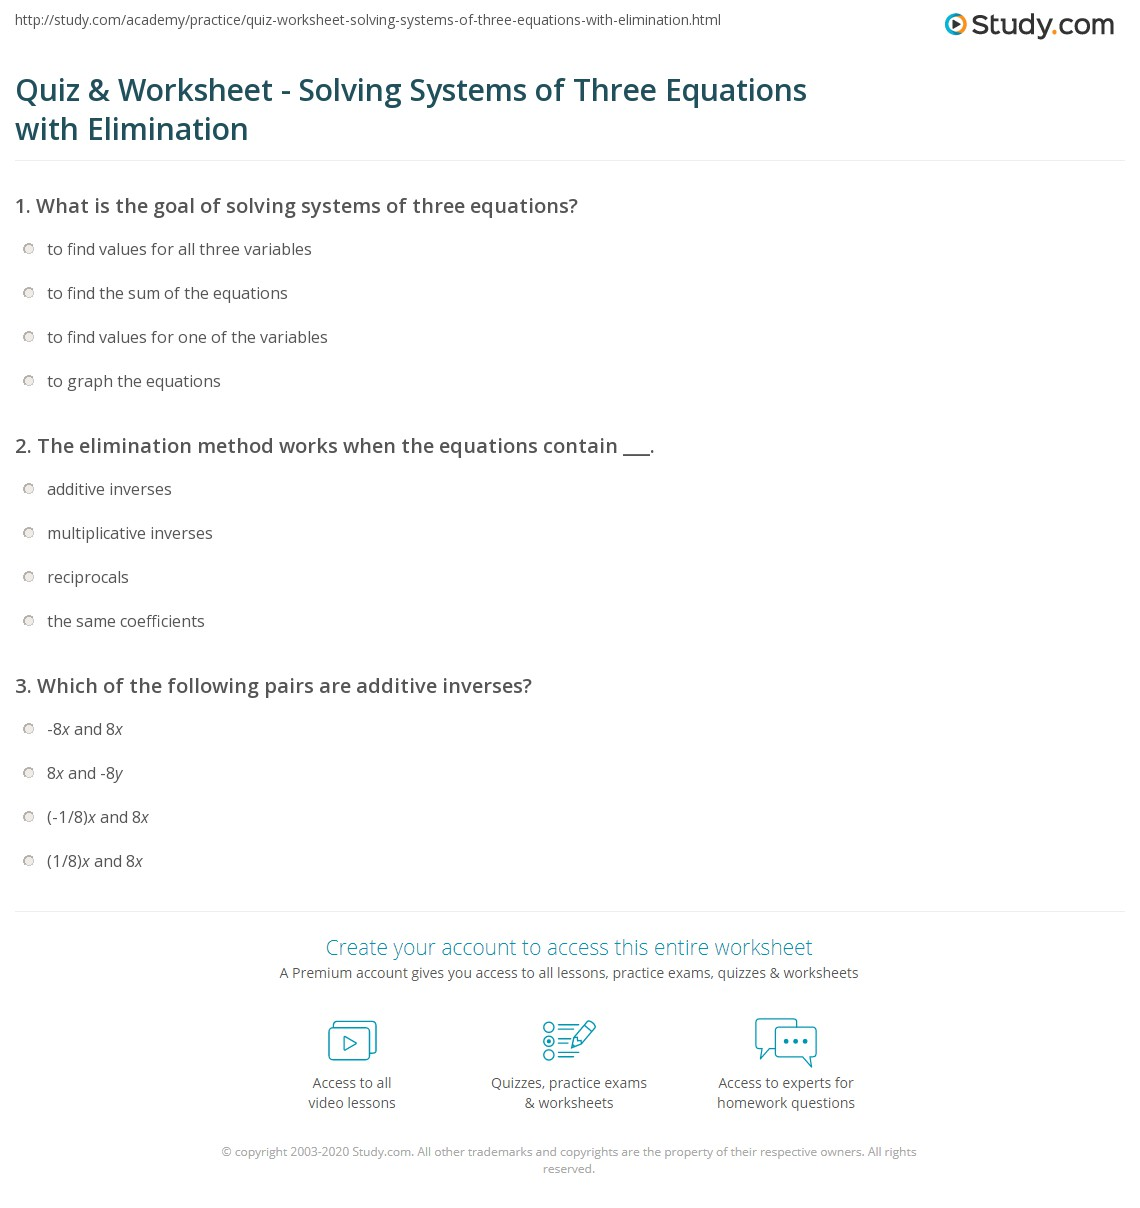 quiz worksheet solving systems of three equations with elimination. Black Bedroom Furniture Sets. Home Design Ideas